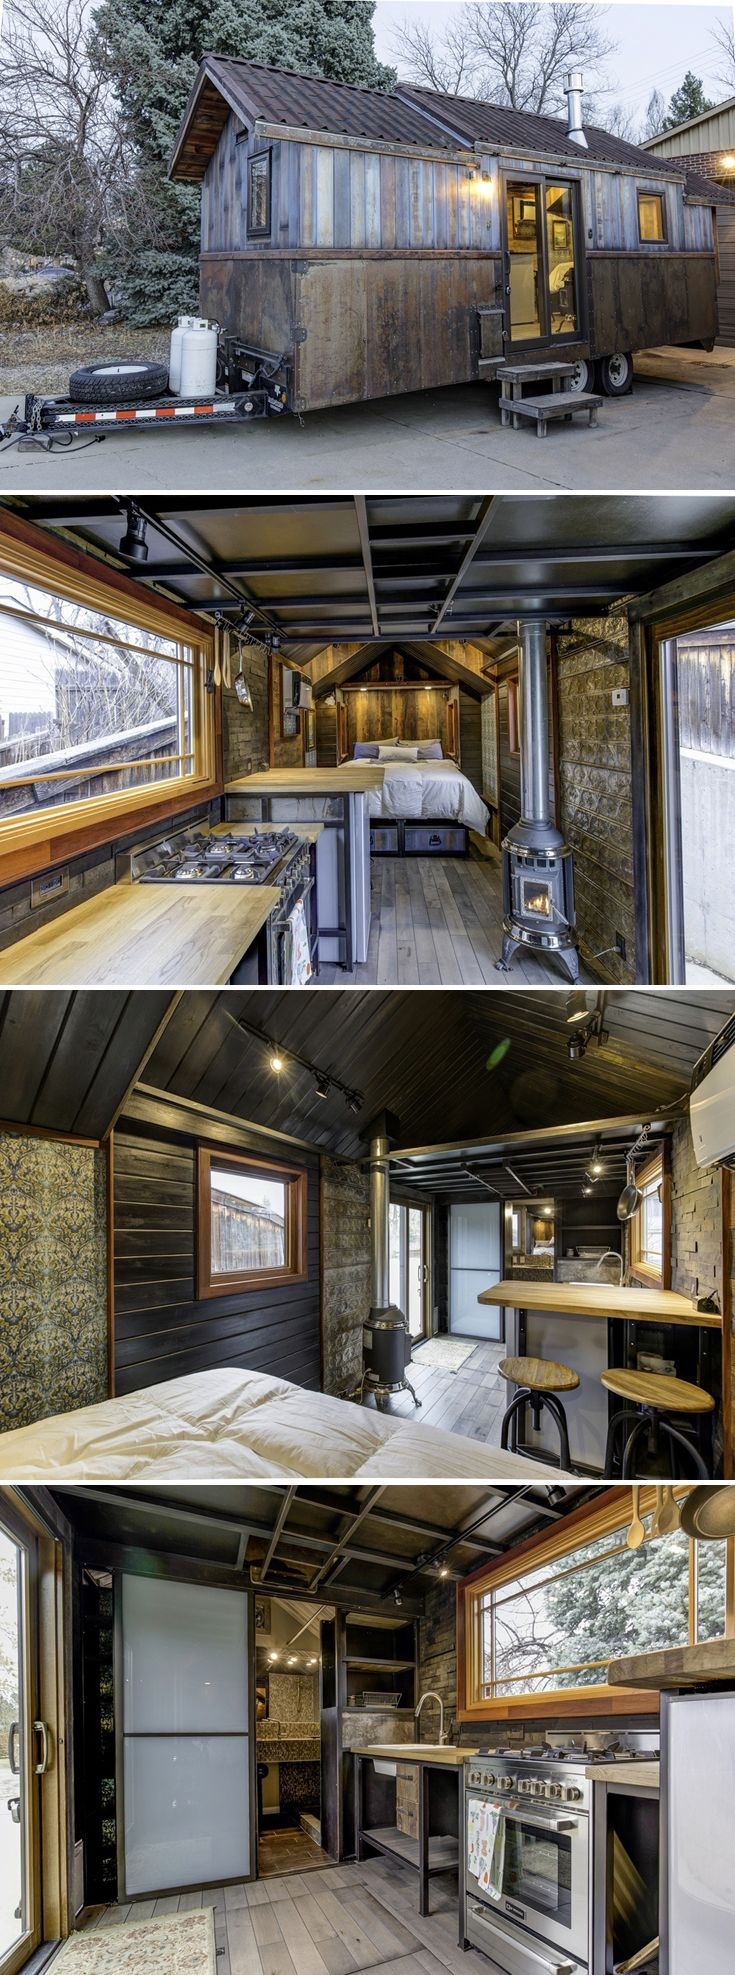 Earth and sky palace tiny houses pinterest haus for Kleines mobiles haus